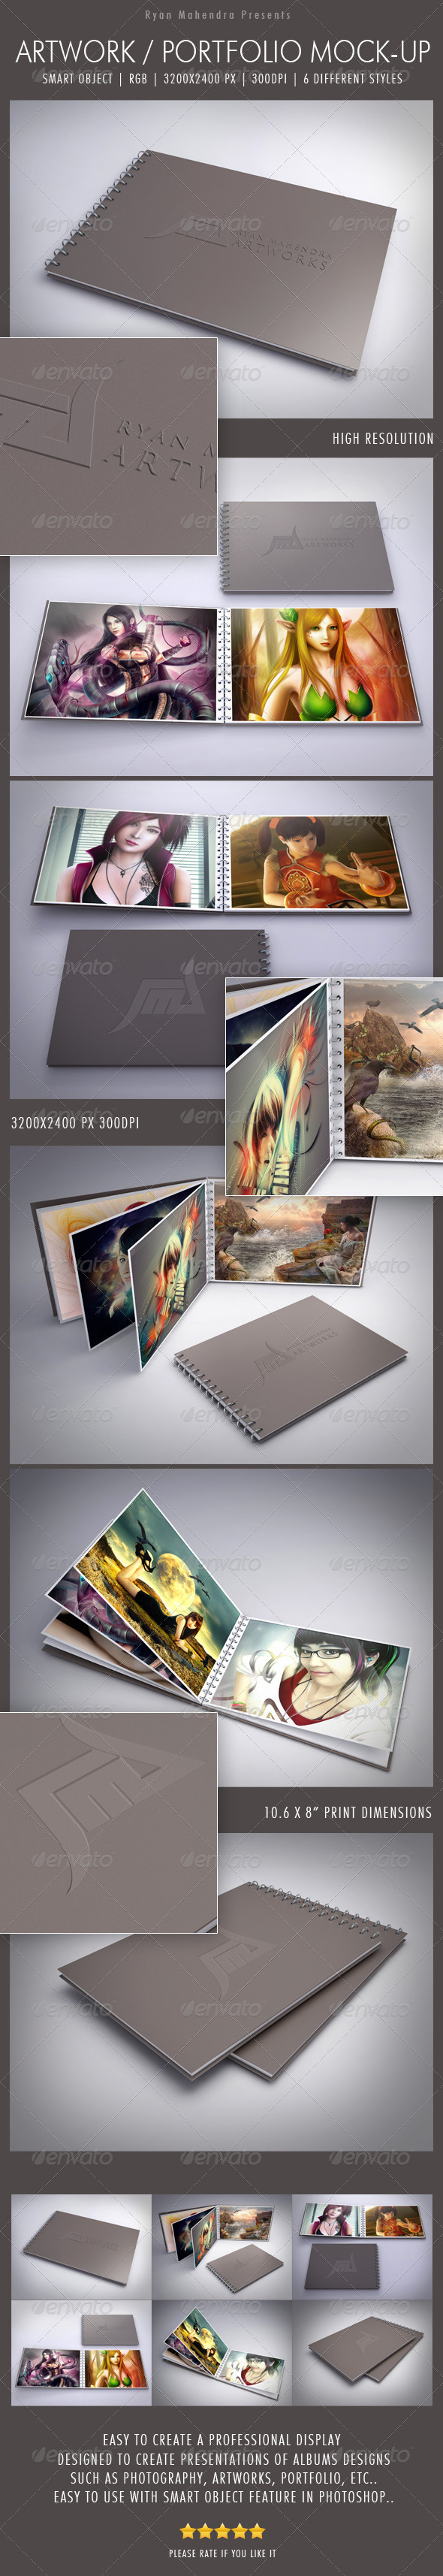 GraphicRiver Artwork Portfolio Mock-Up 4571084